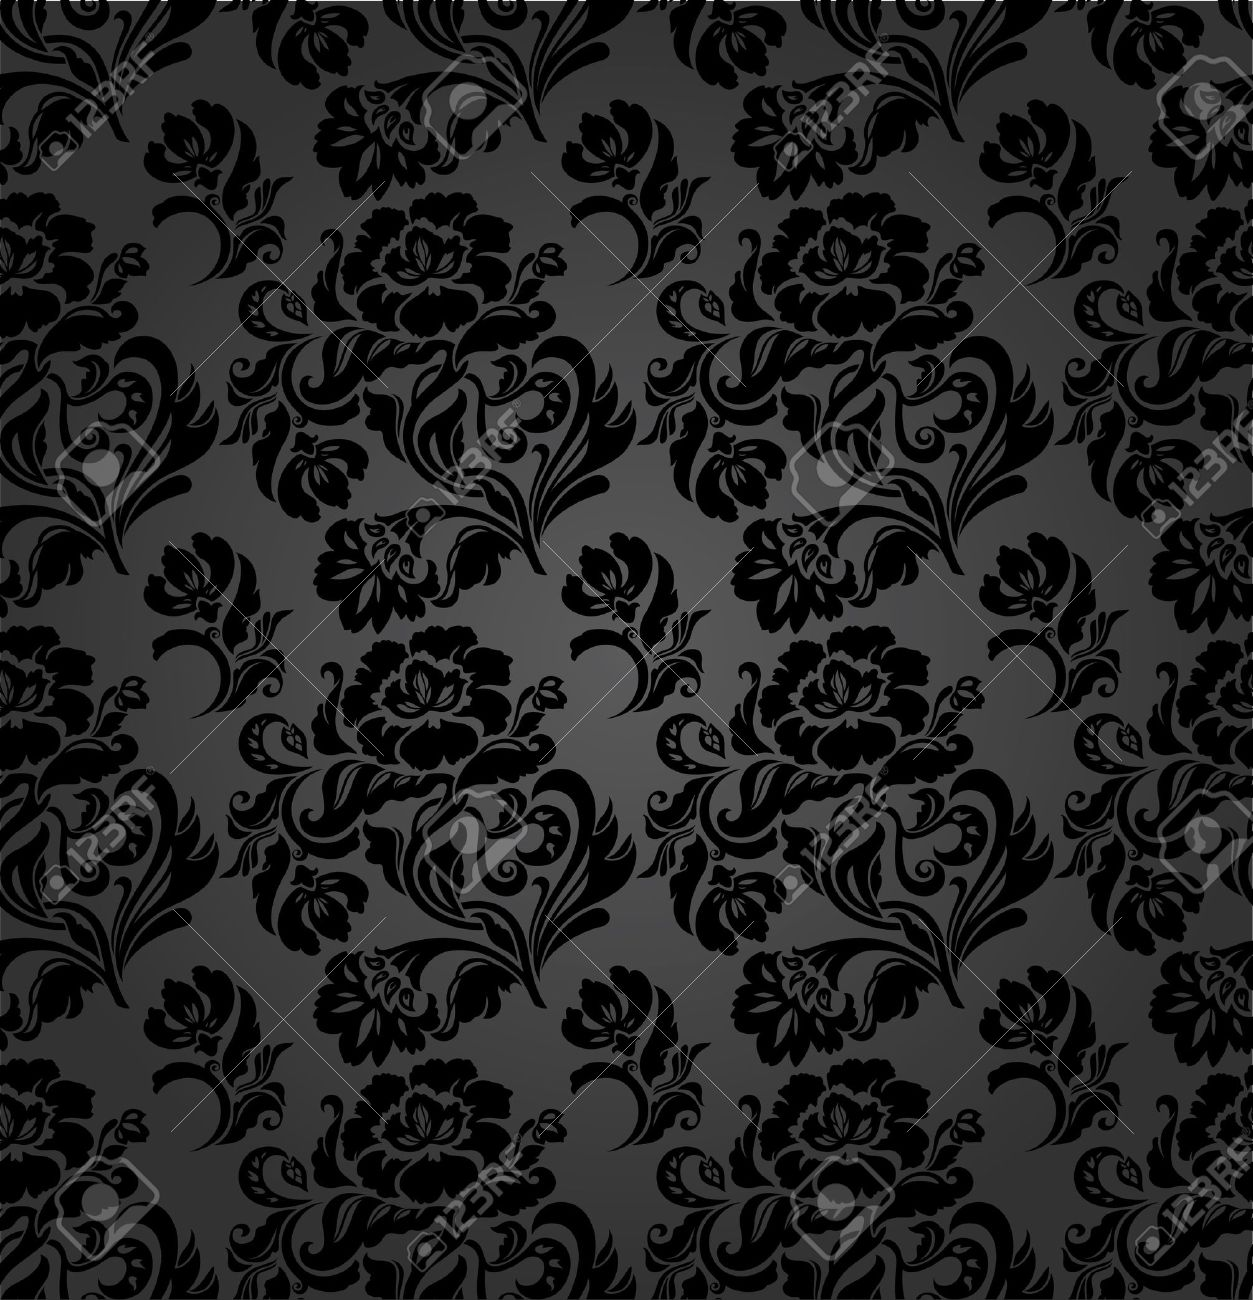 Curtain Texture Seamless seamless pattern, curtains floral, vector royalty free cliparts